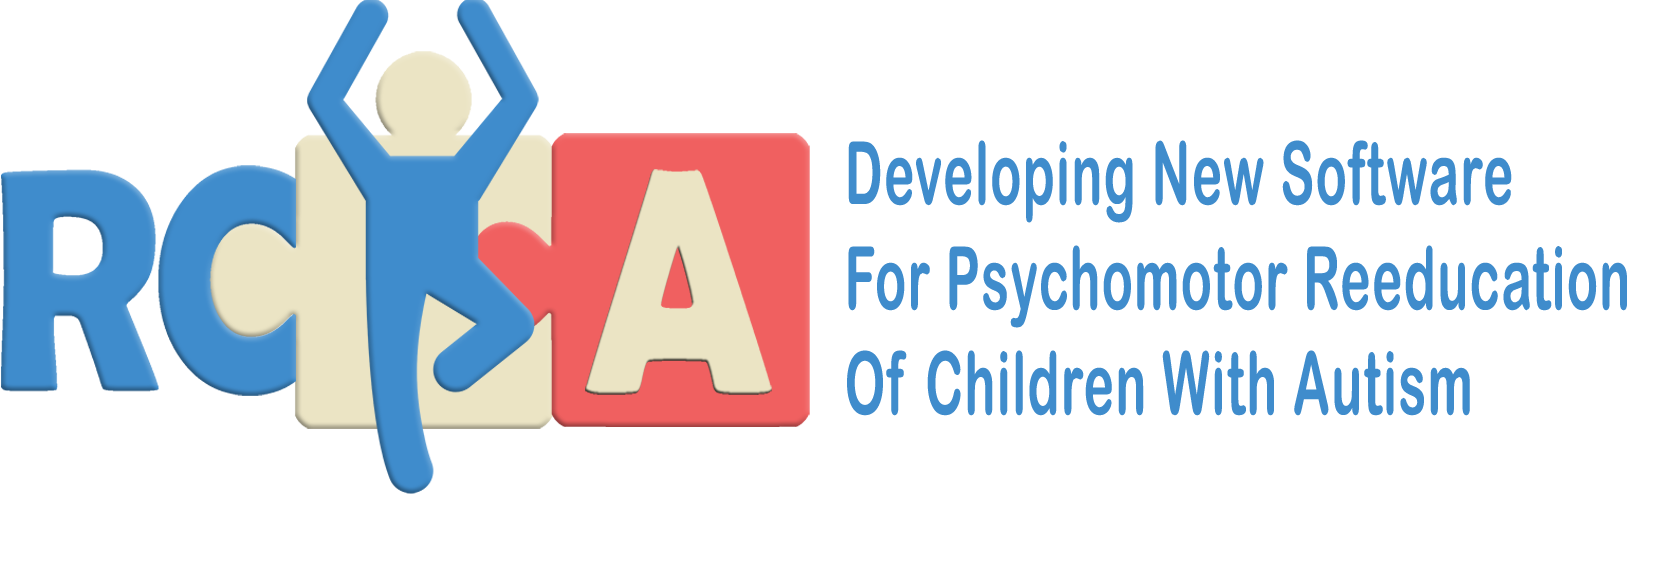 Developing the Psychomotor Skills of Children With Autism is Now Easier